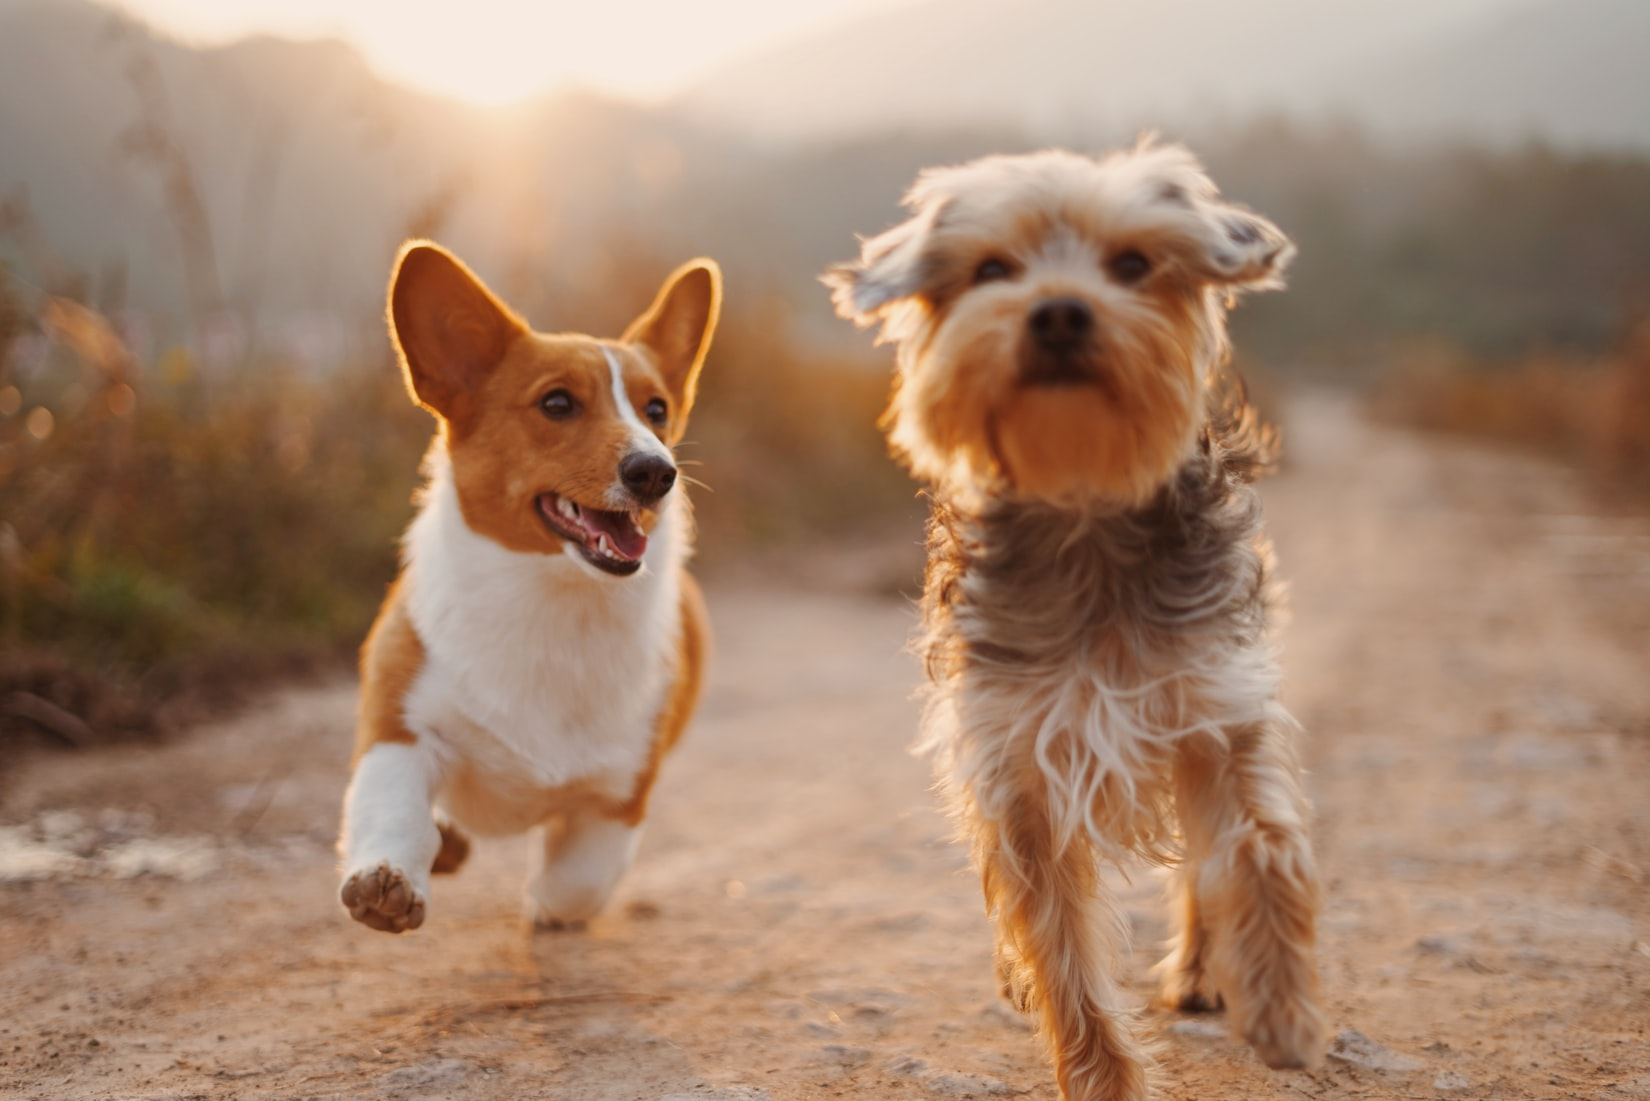 is popcorn safe for dogs